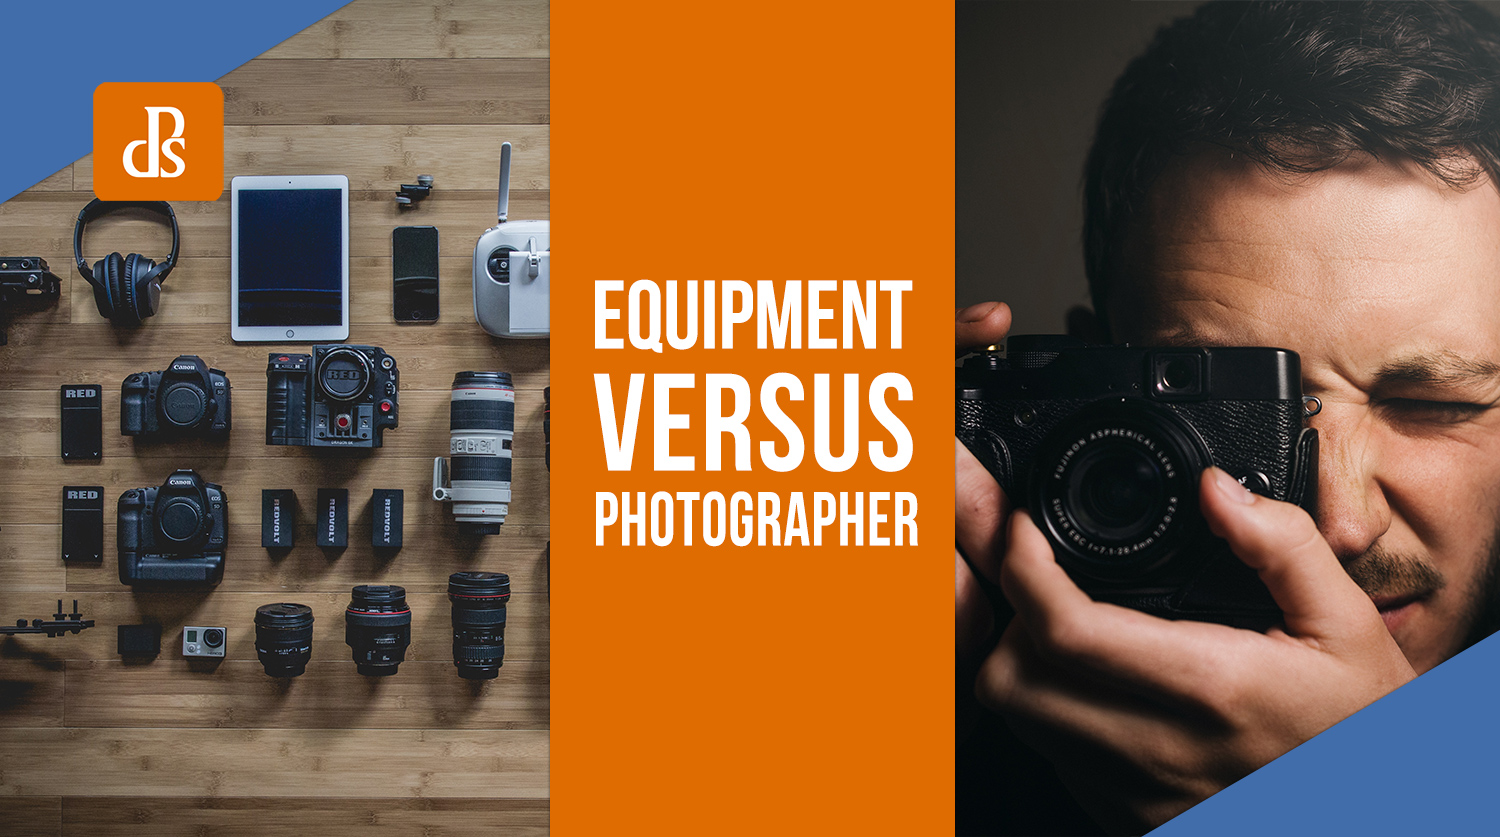 https://i2.wp.com/digital-photography-school.com/wp-content/uploads/2019/09/dps-equipment-versus-photographer-feature.jpg?resize=1500%2C837&ssl=1